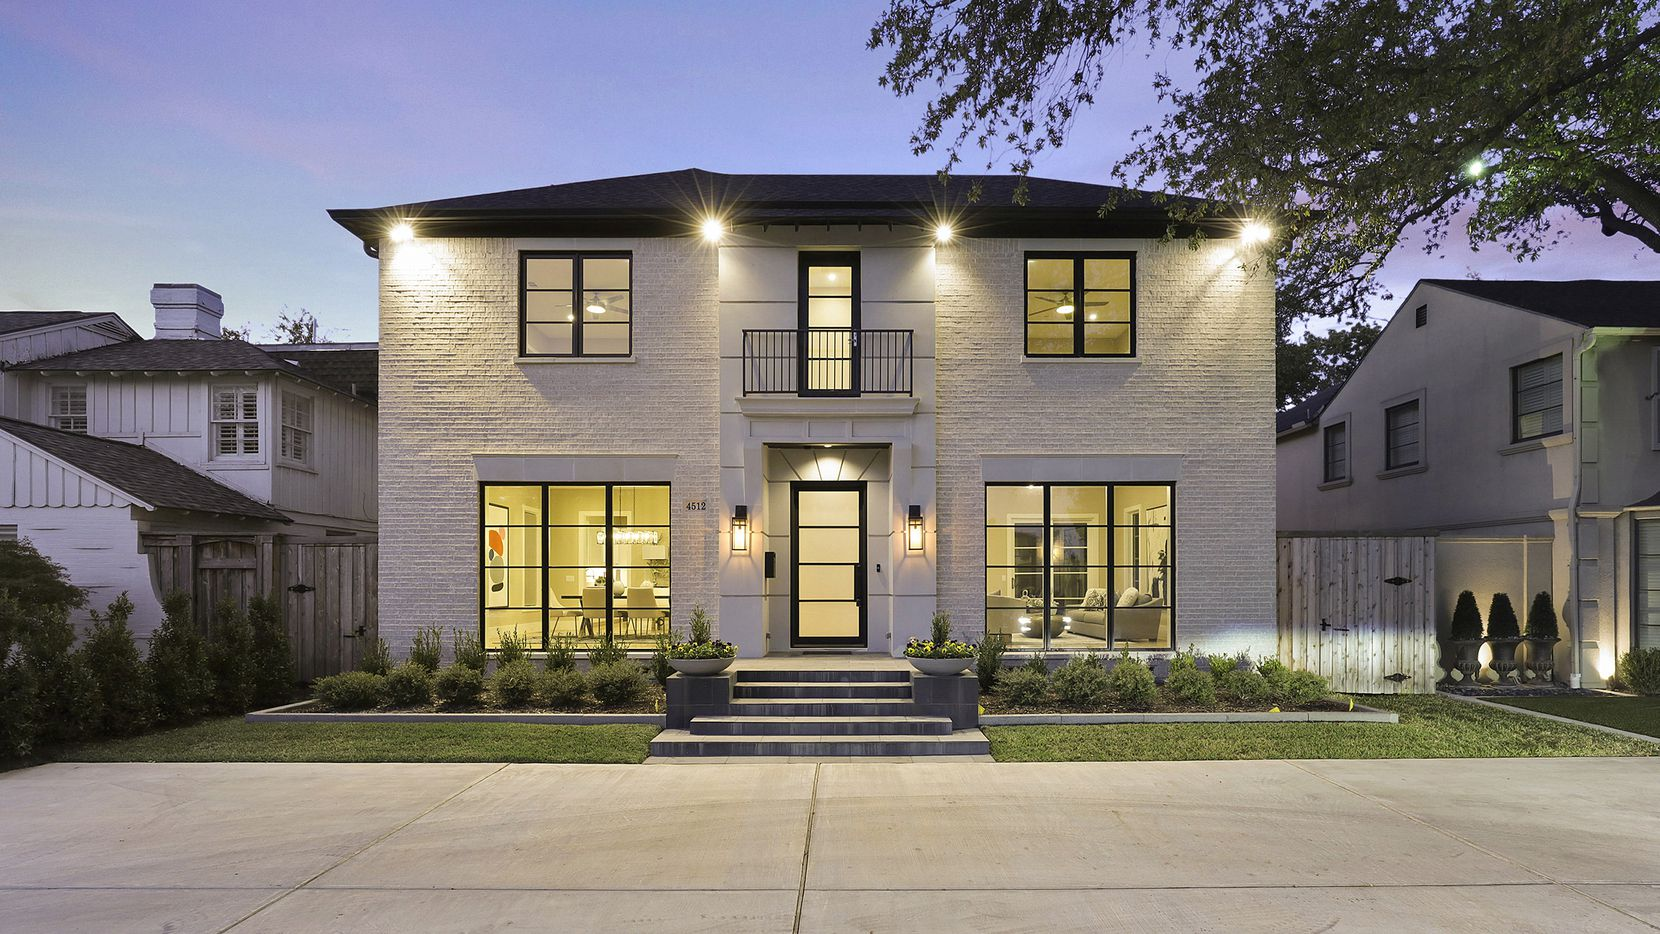 The home at 4512 Mockingbird Lane in the Park Cities, listed by Karen LaVorgna, is a transitional design.